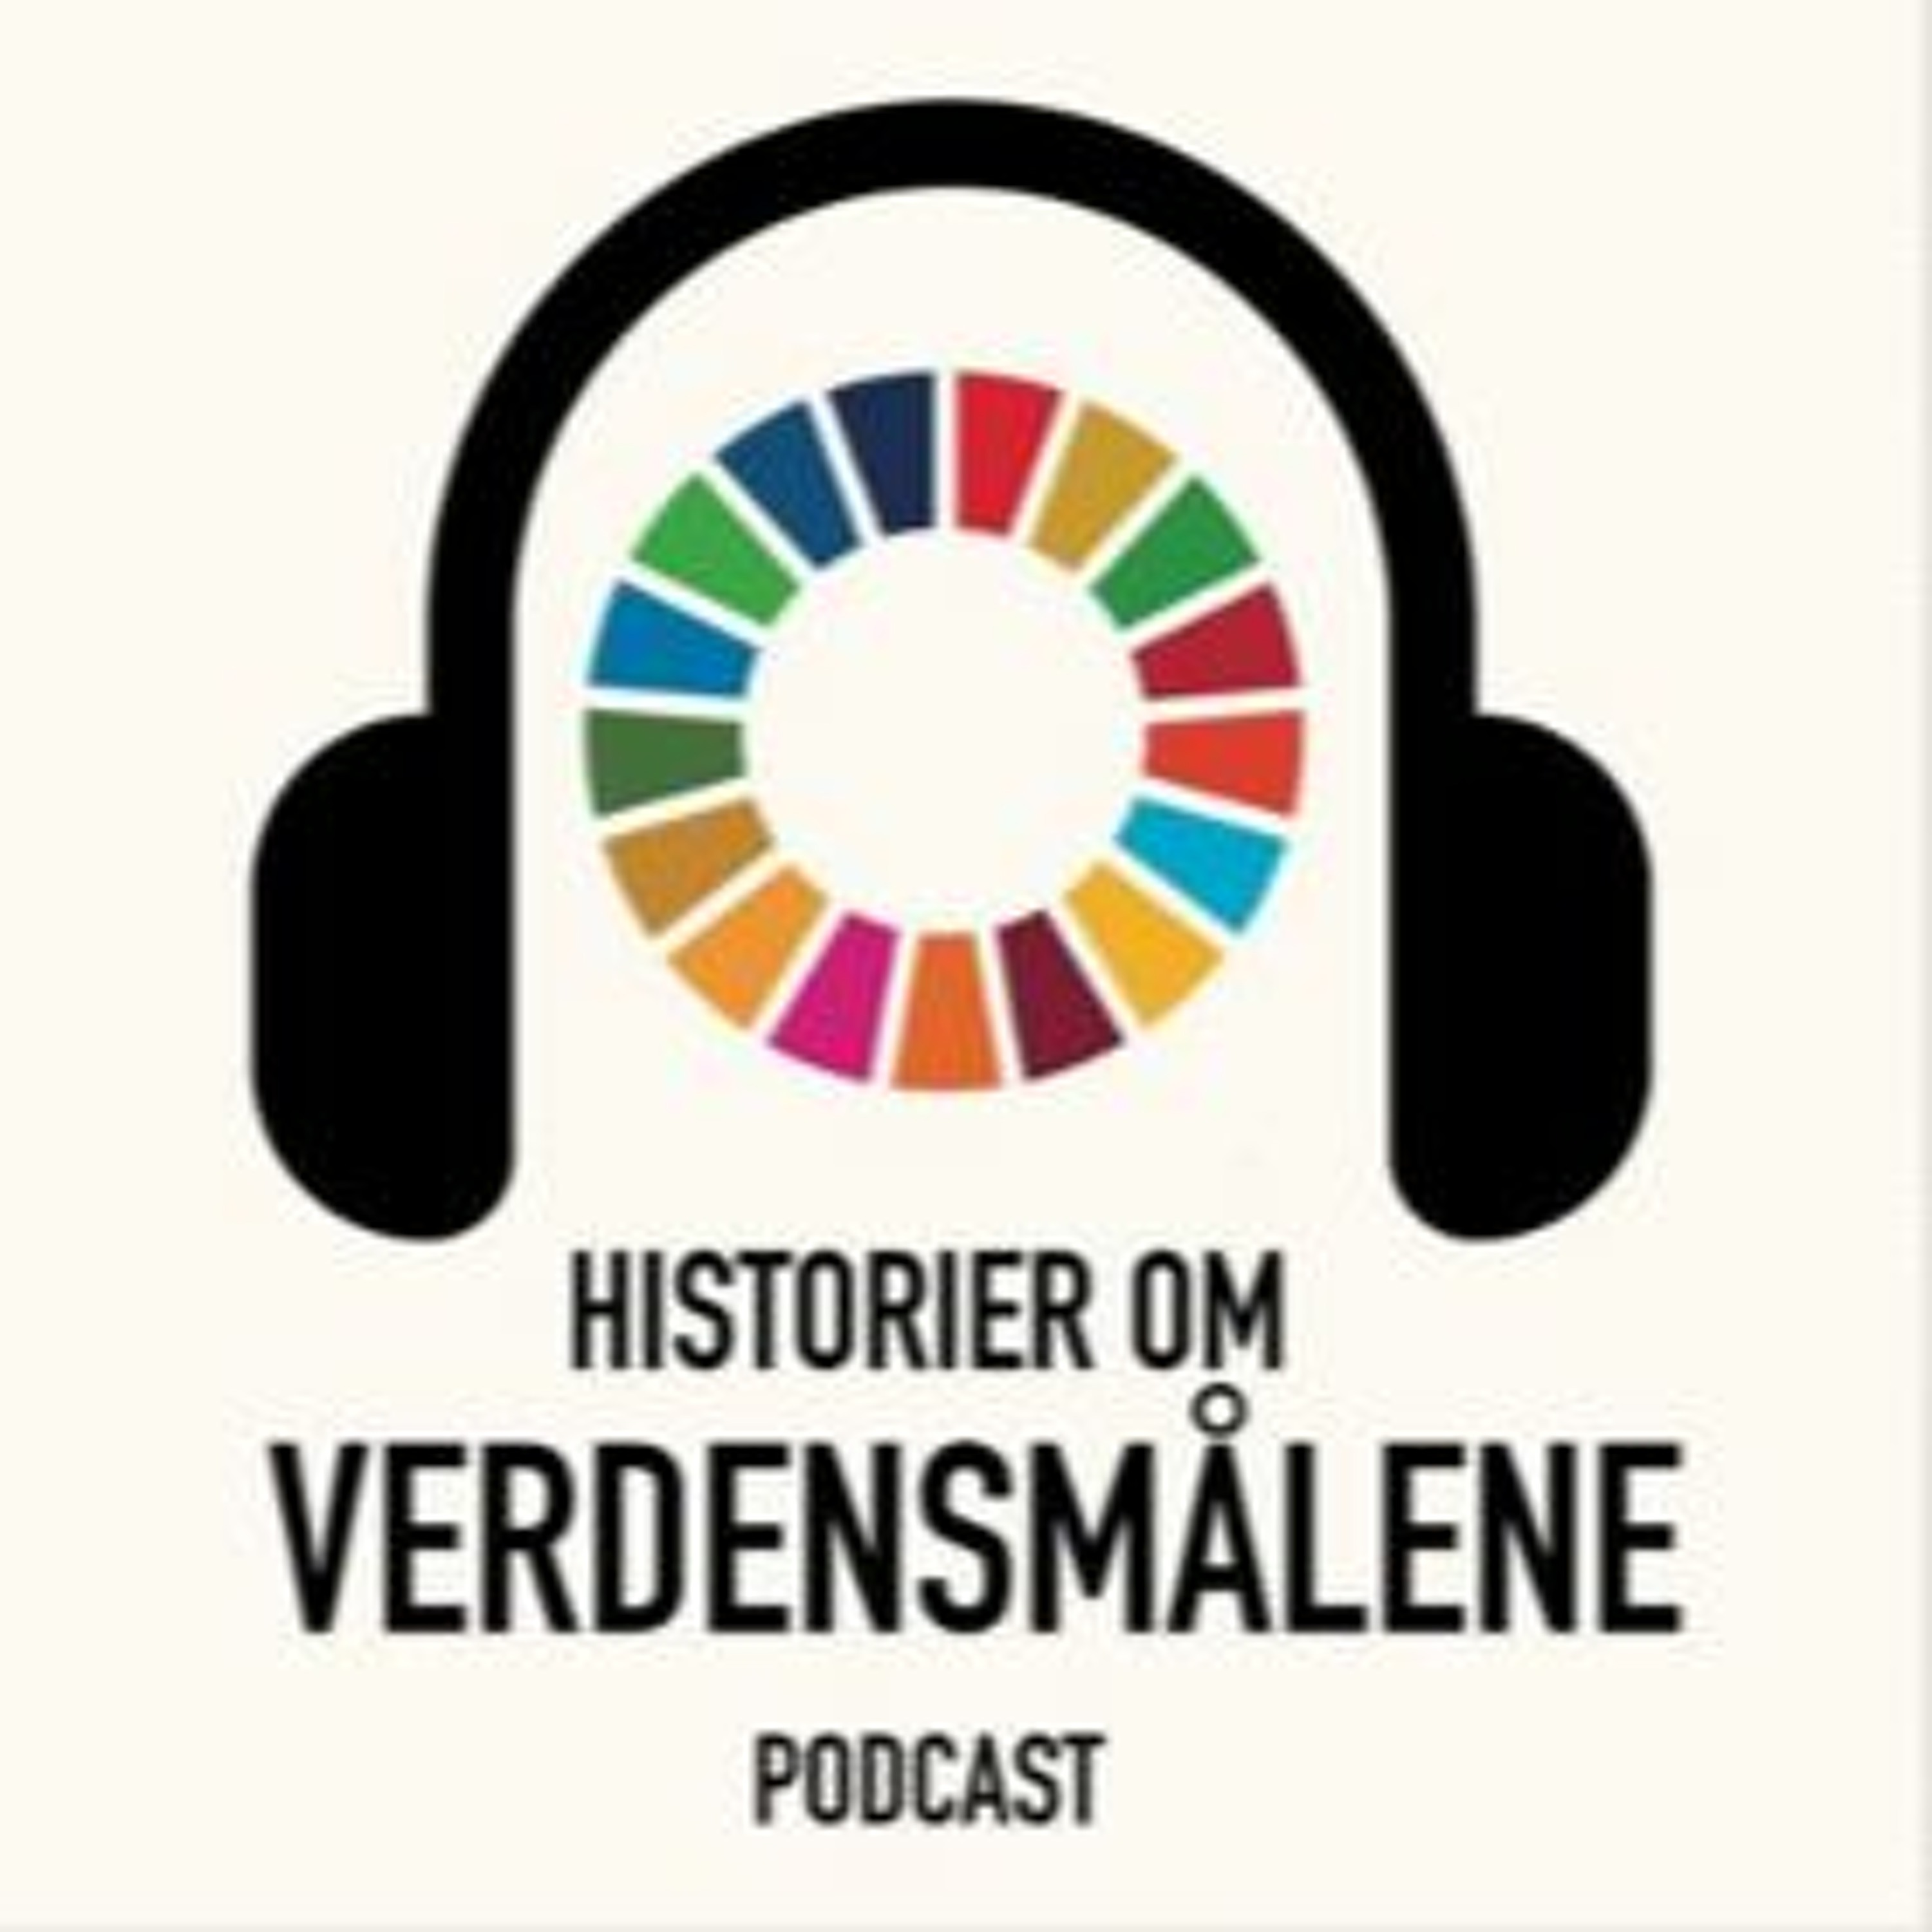 PEOPLE WITH DISABILITIES - Stories about the Global Goals with Jose Viera